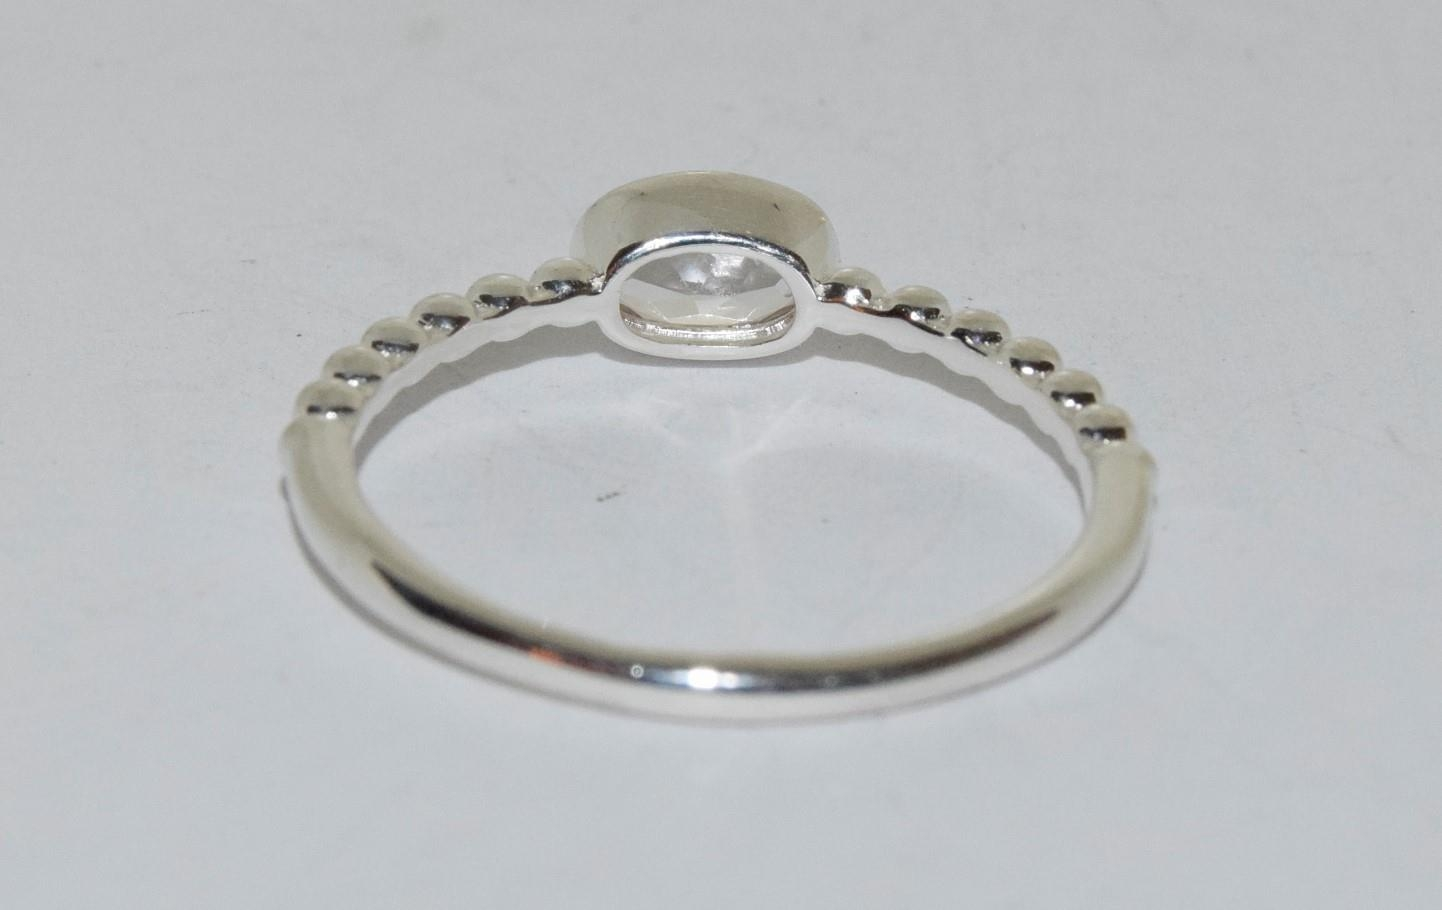 A silver ring with oval stone to centre, Size T 1/2. - Image 3 of 3